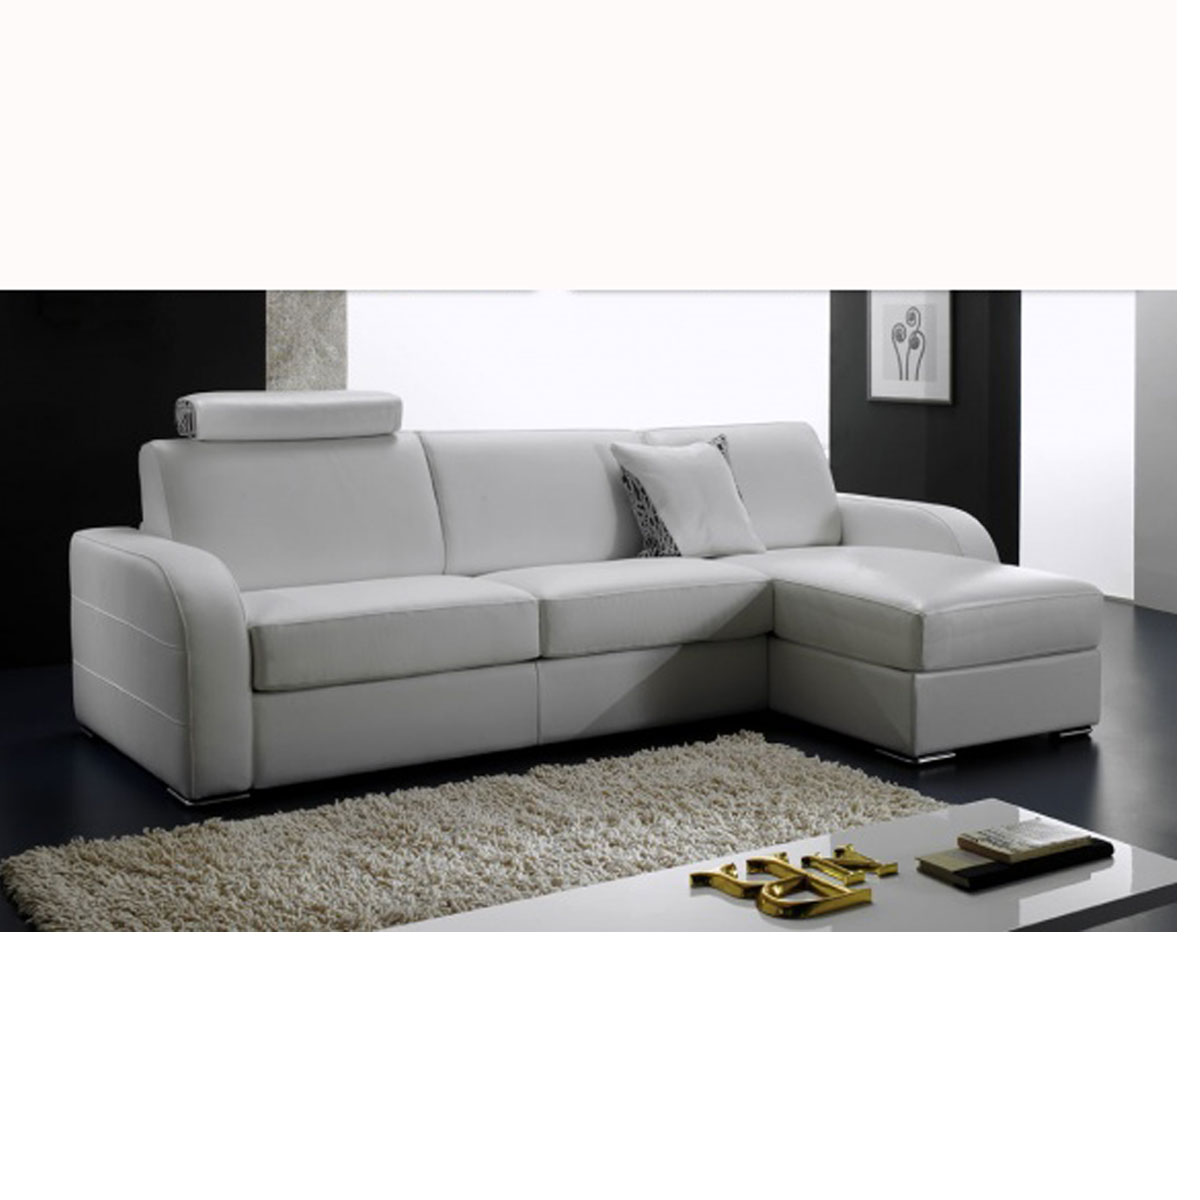 Canap d angle convertible petite dimension royal sofa - Canape d angle de qualite ...